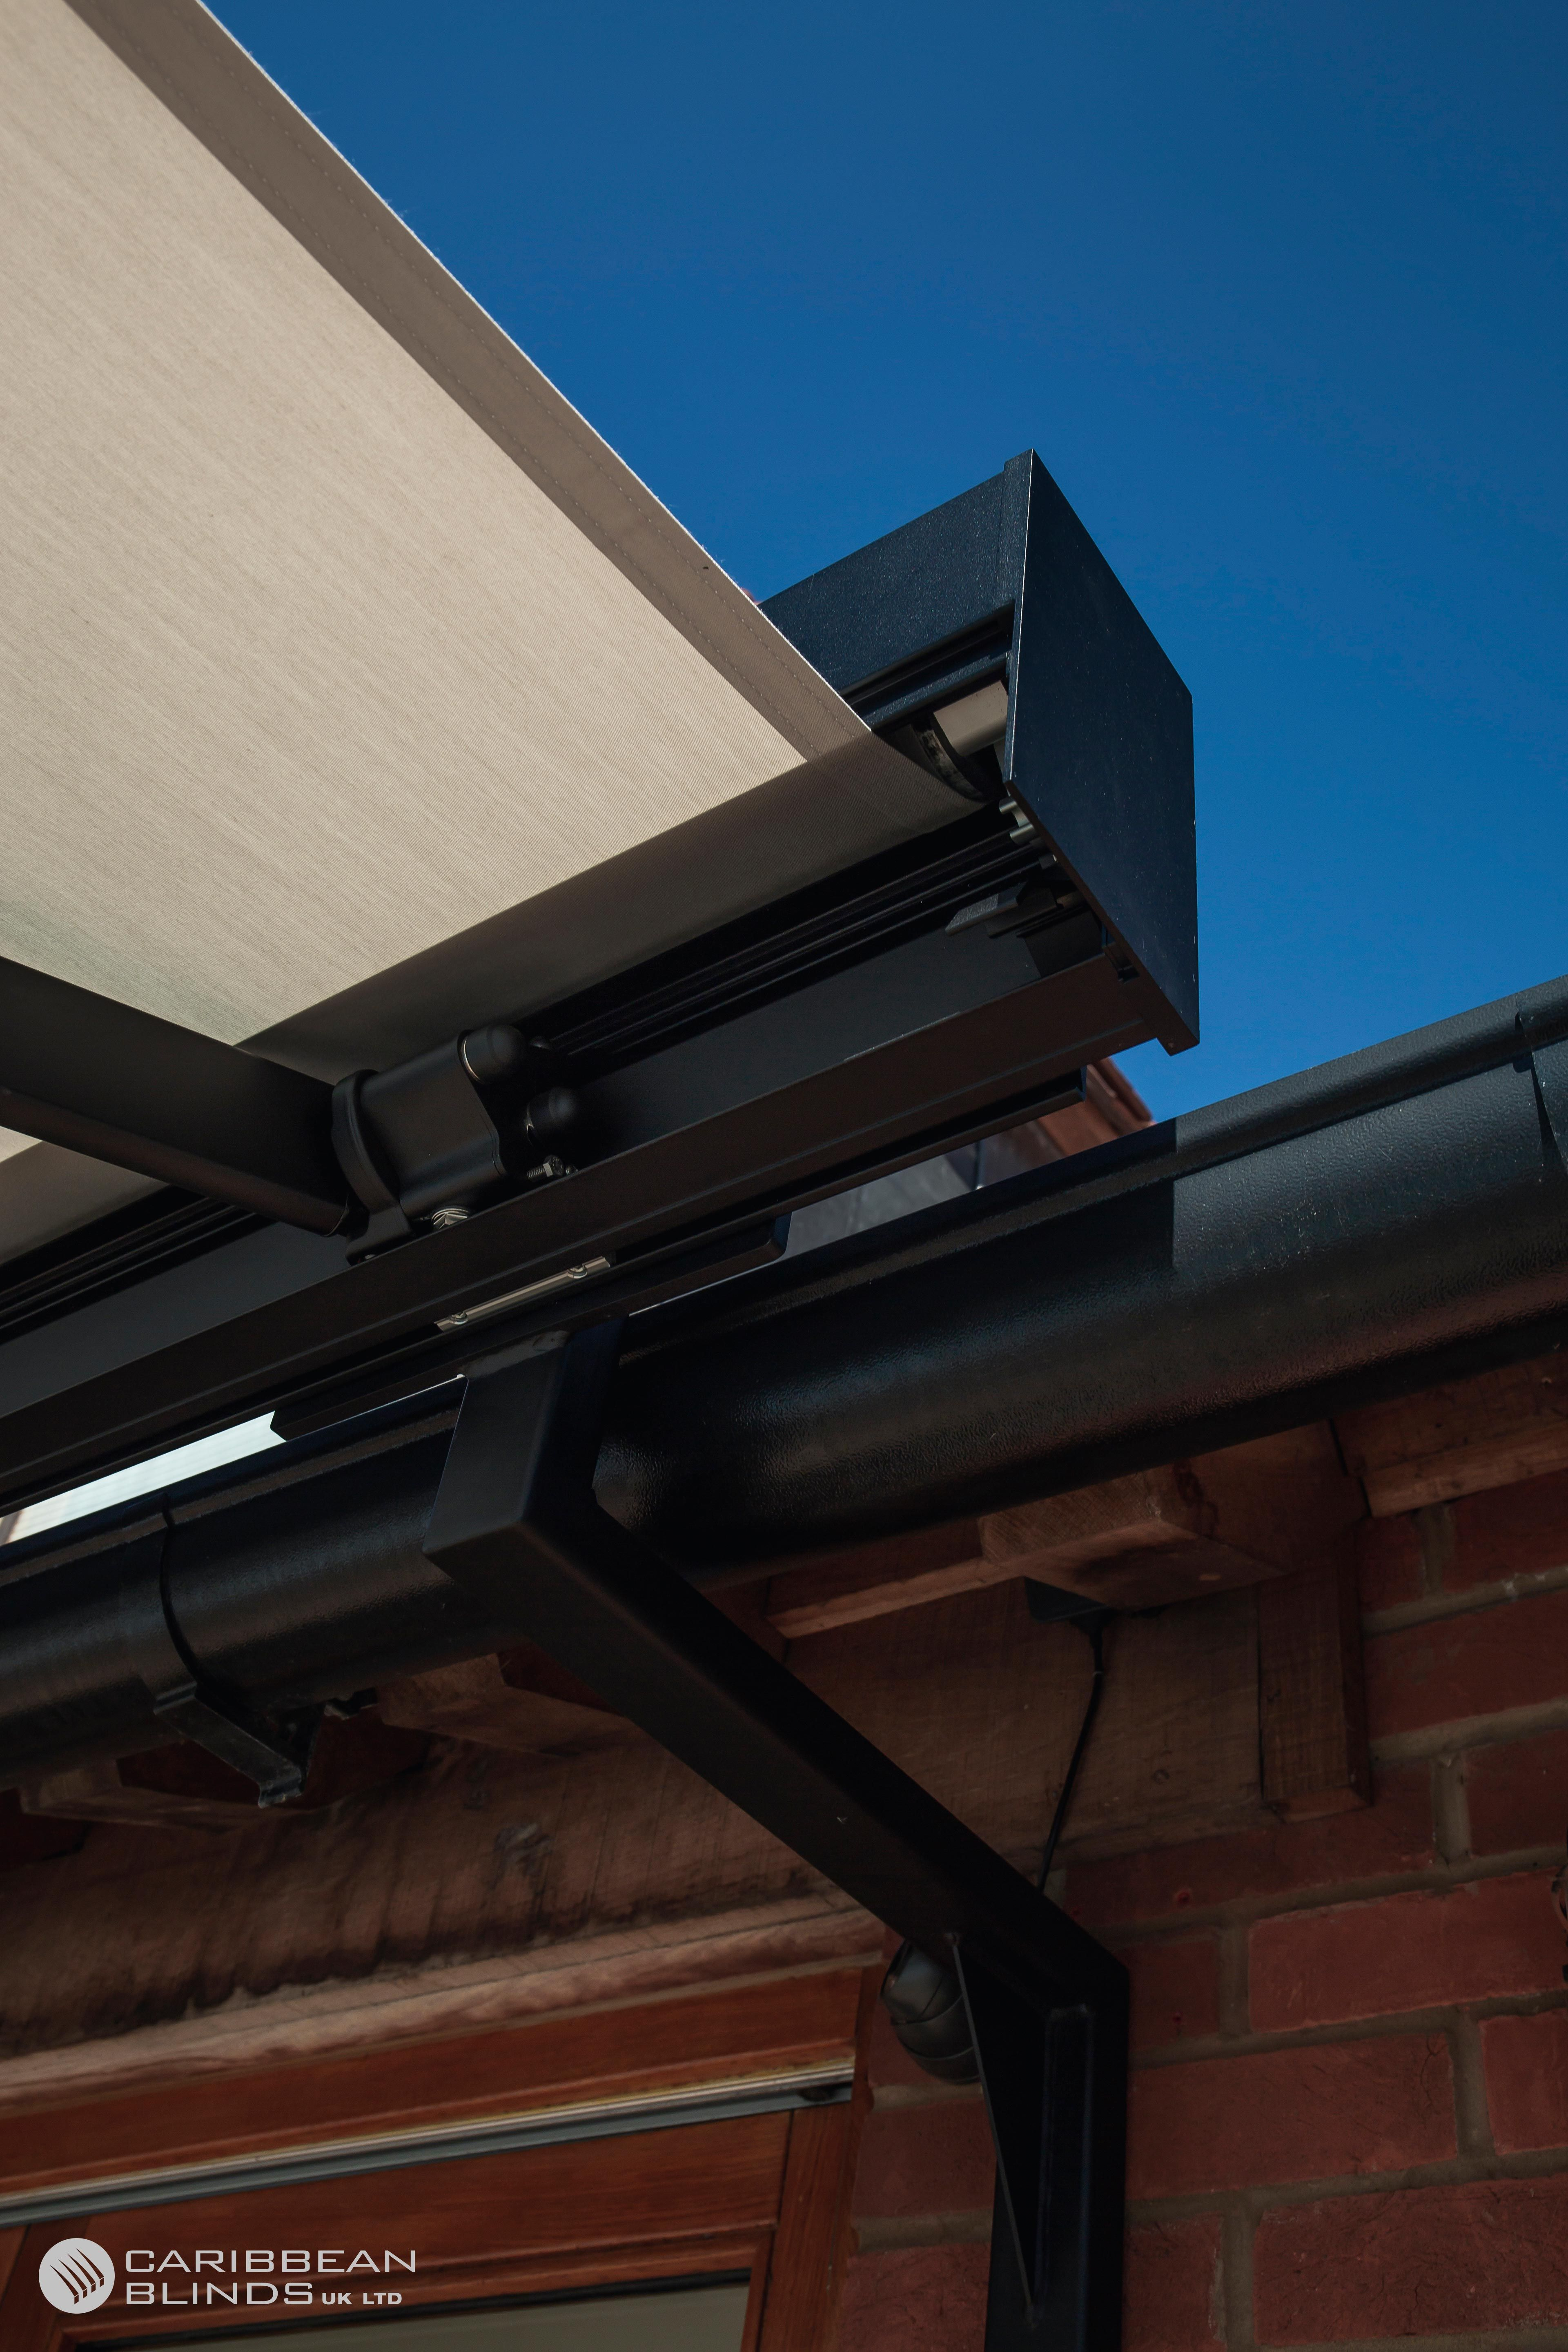 We Manufacture Bespoke Awning Brackets To Overcome Gutters And And Single Storey Extensions Awnings Ga Outdoor Awnings Patio Awning Blinds For Bifold Doors